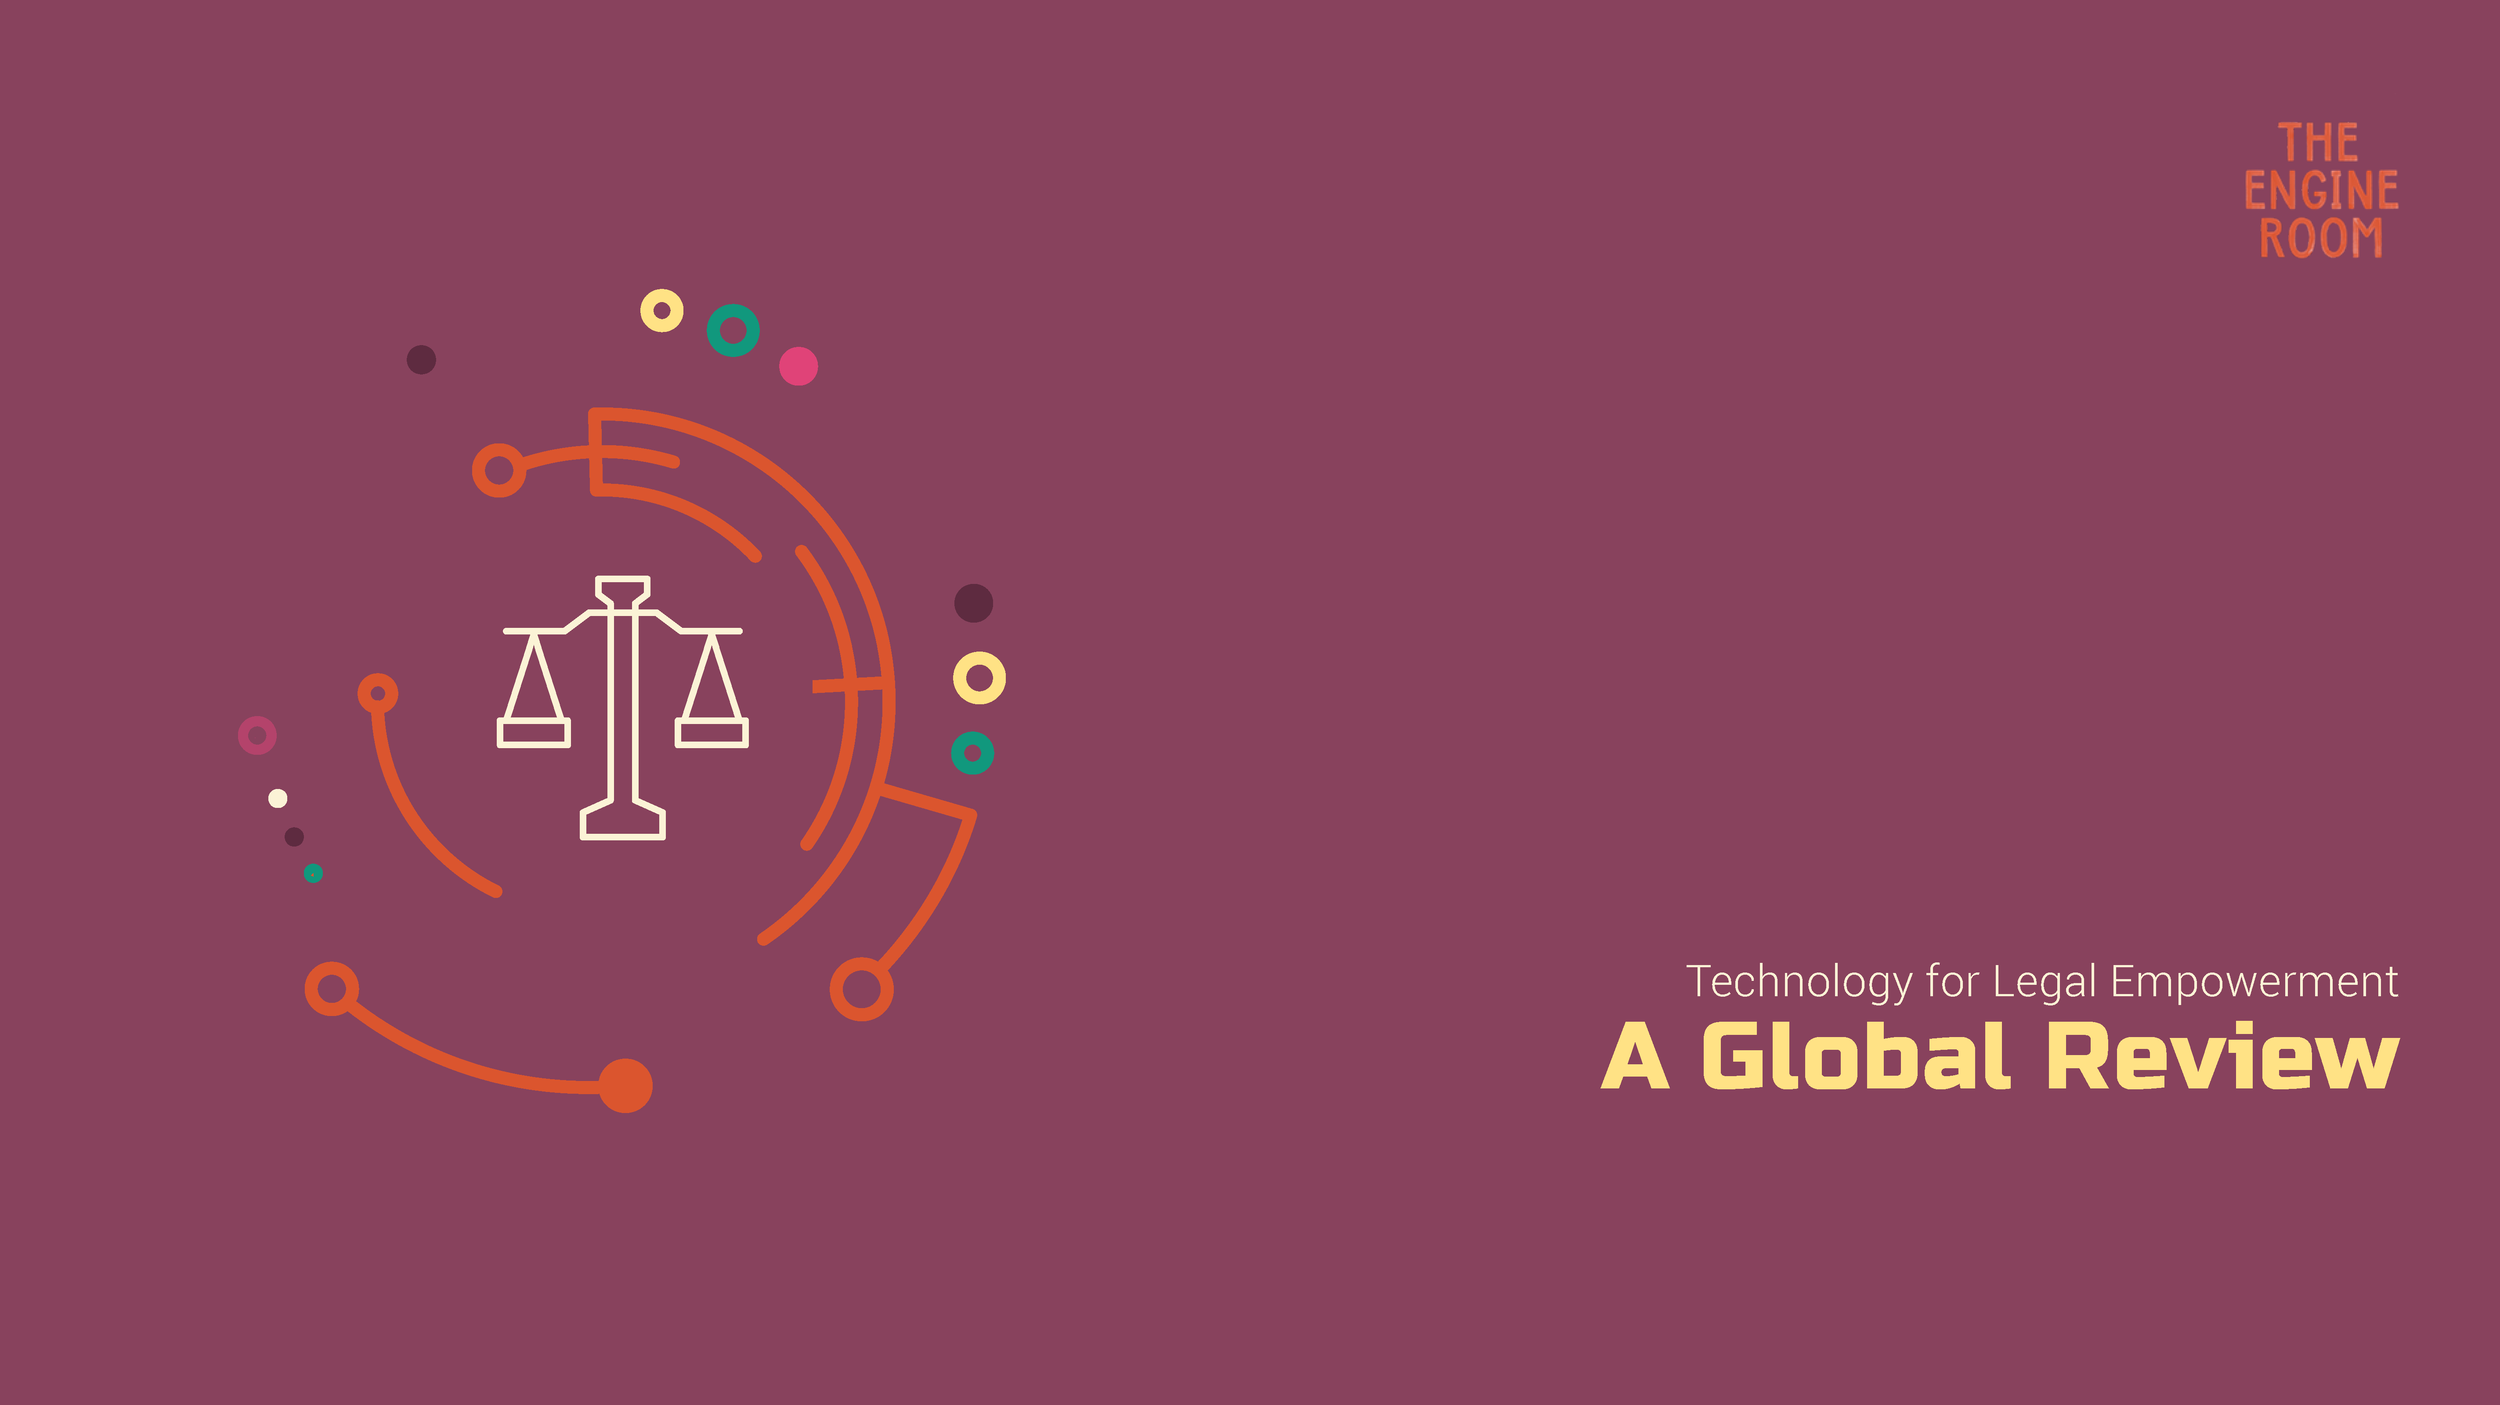 Tech-for-Legal-Empowerment-The-Engine-Room_Page_01.png